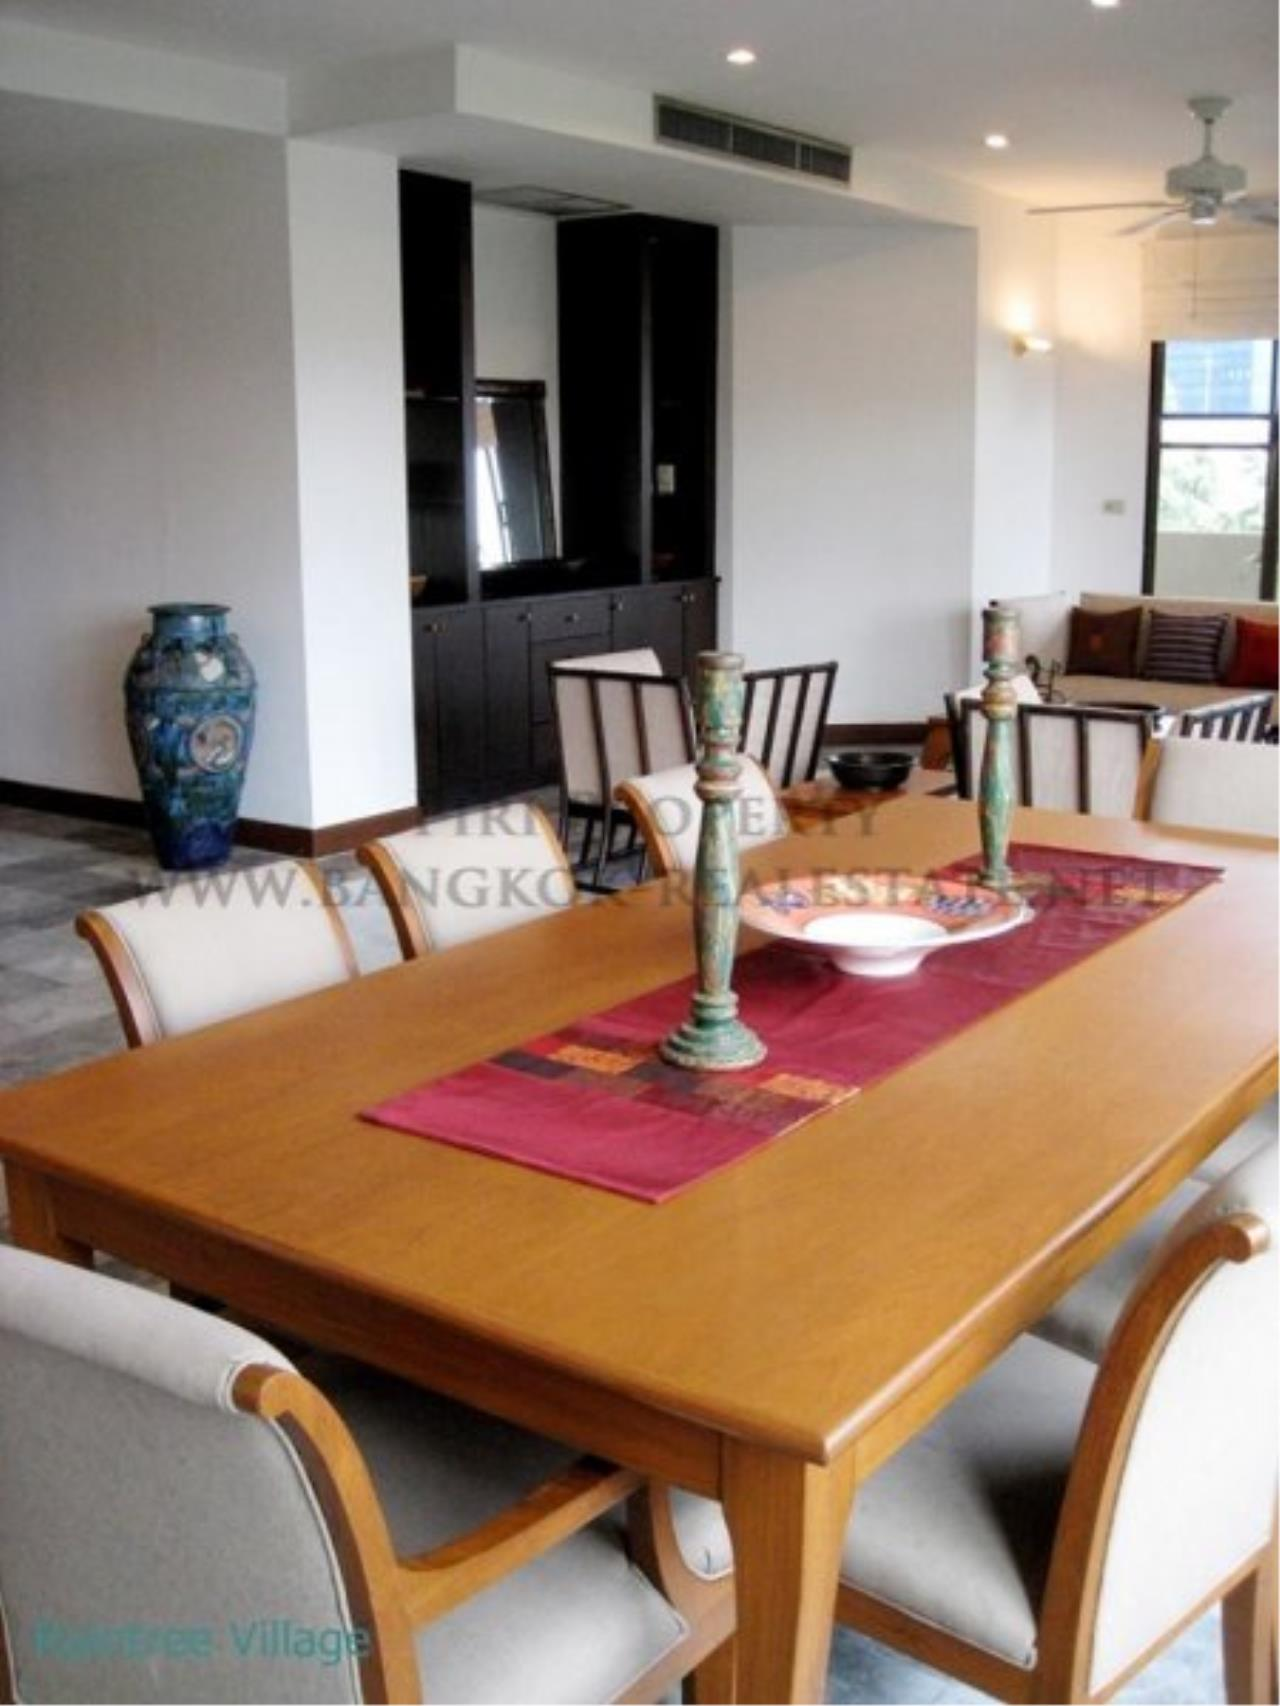 Piri Property Agency's Spacious Family Apartment in Phrom Phong for Rent - 3 Bed 2